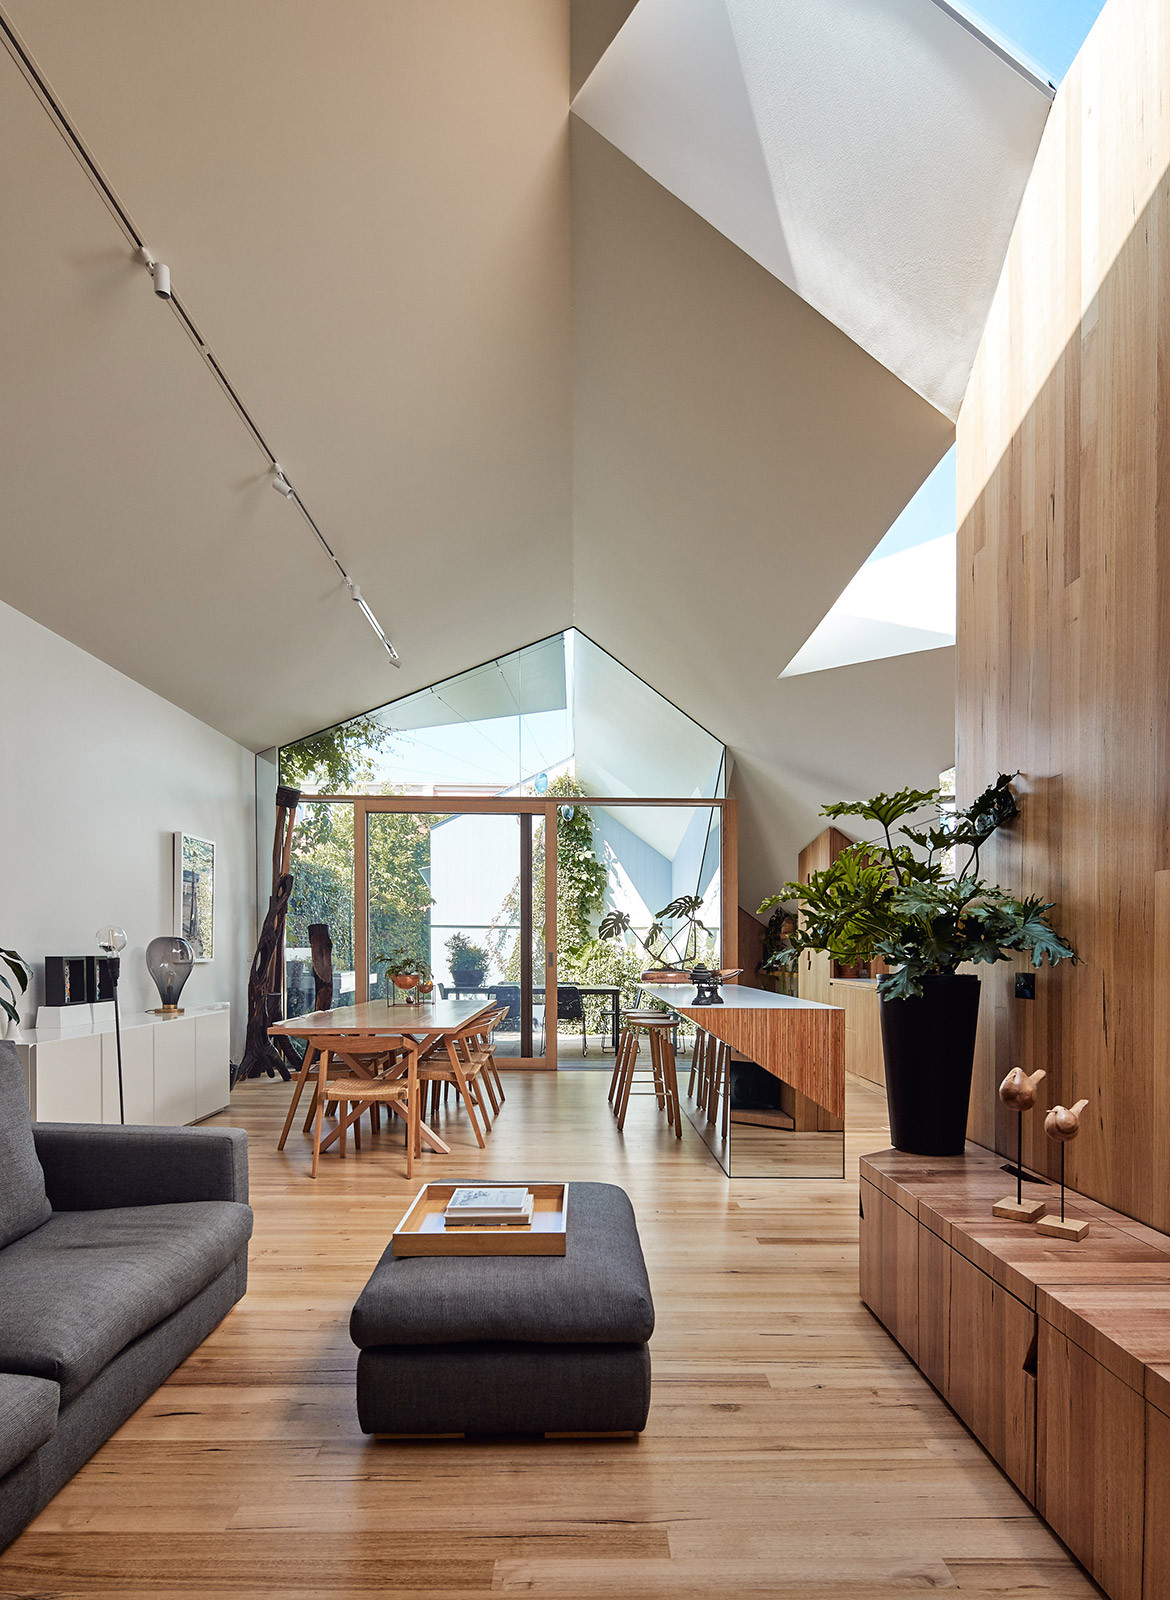 His & Hers House FMD Architects CC Derek Swalwell open plan living